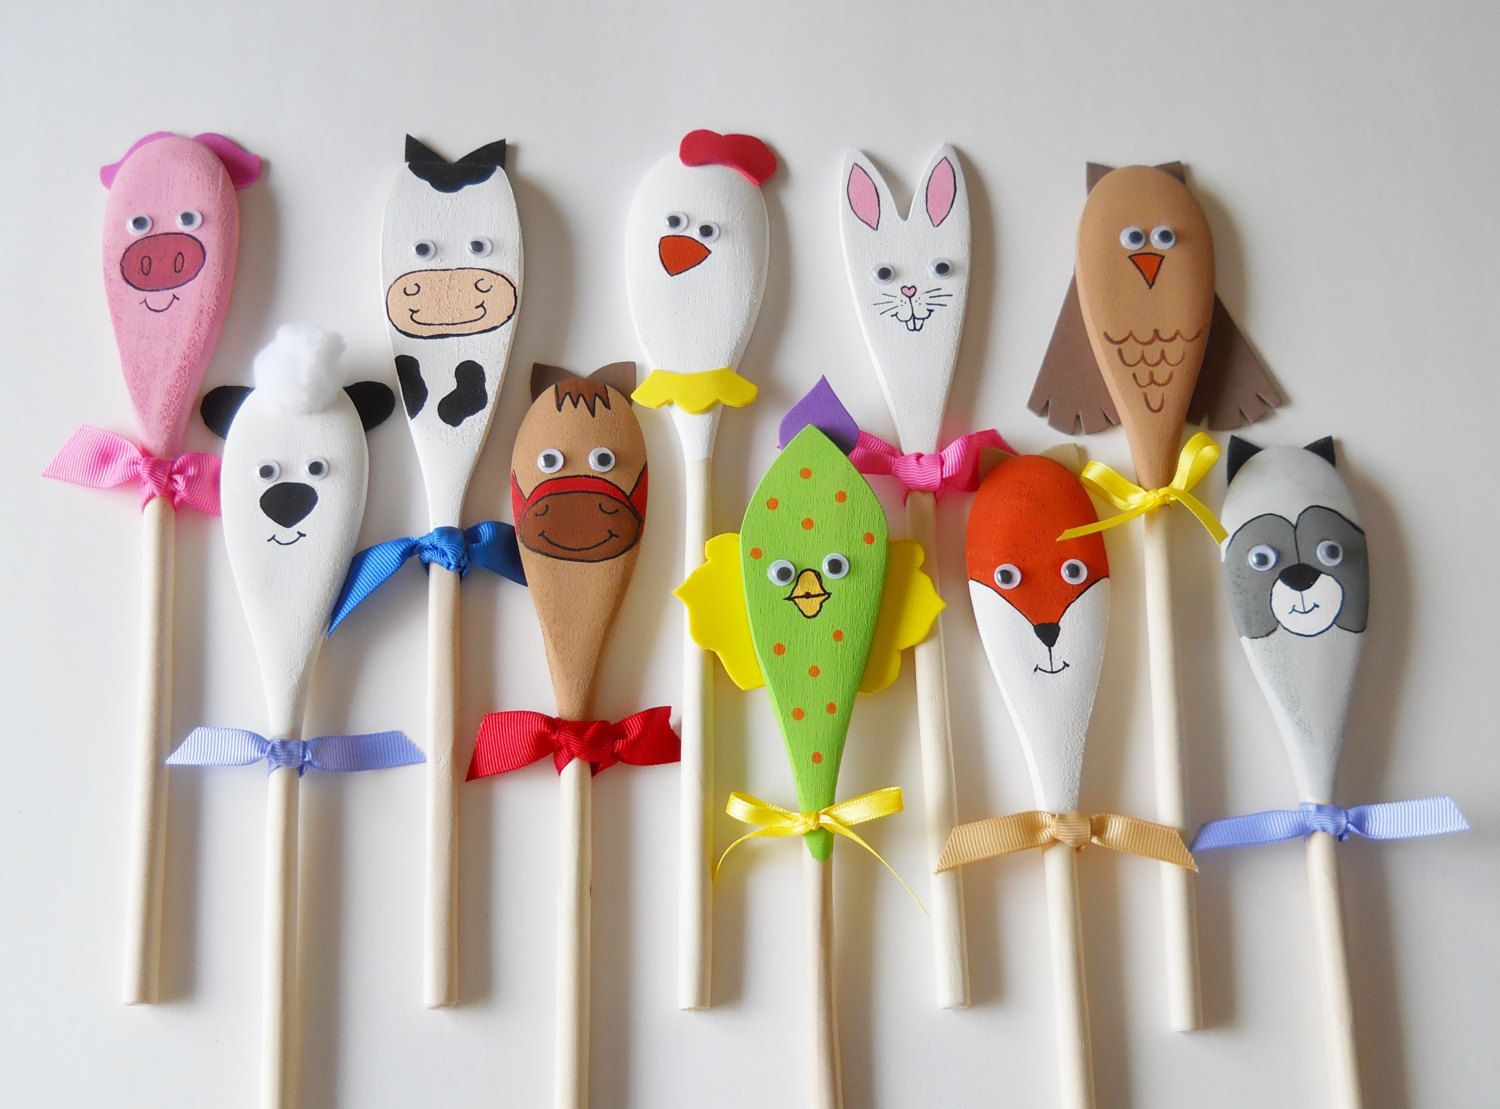 Best 25 spoon craft ideas on pinterest plastic spoon for Cheap wooden spoons for crafts